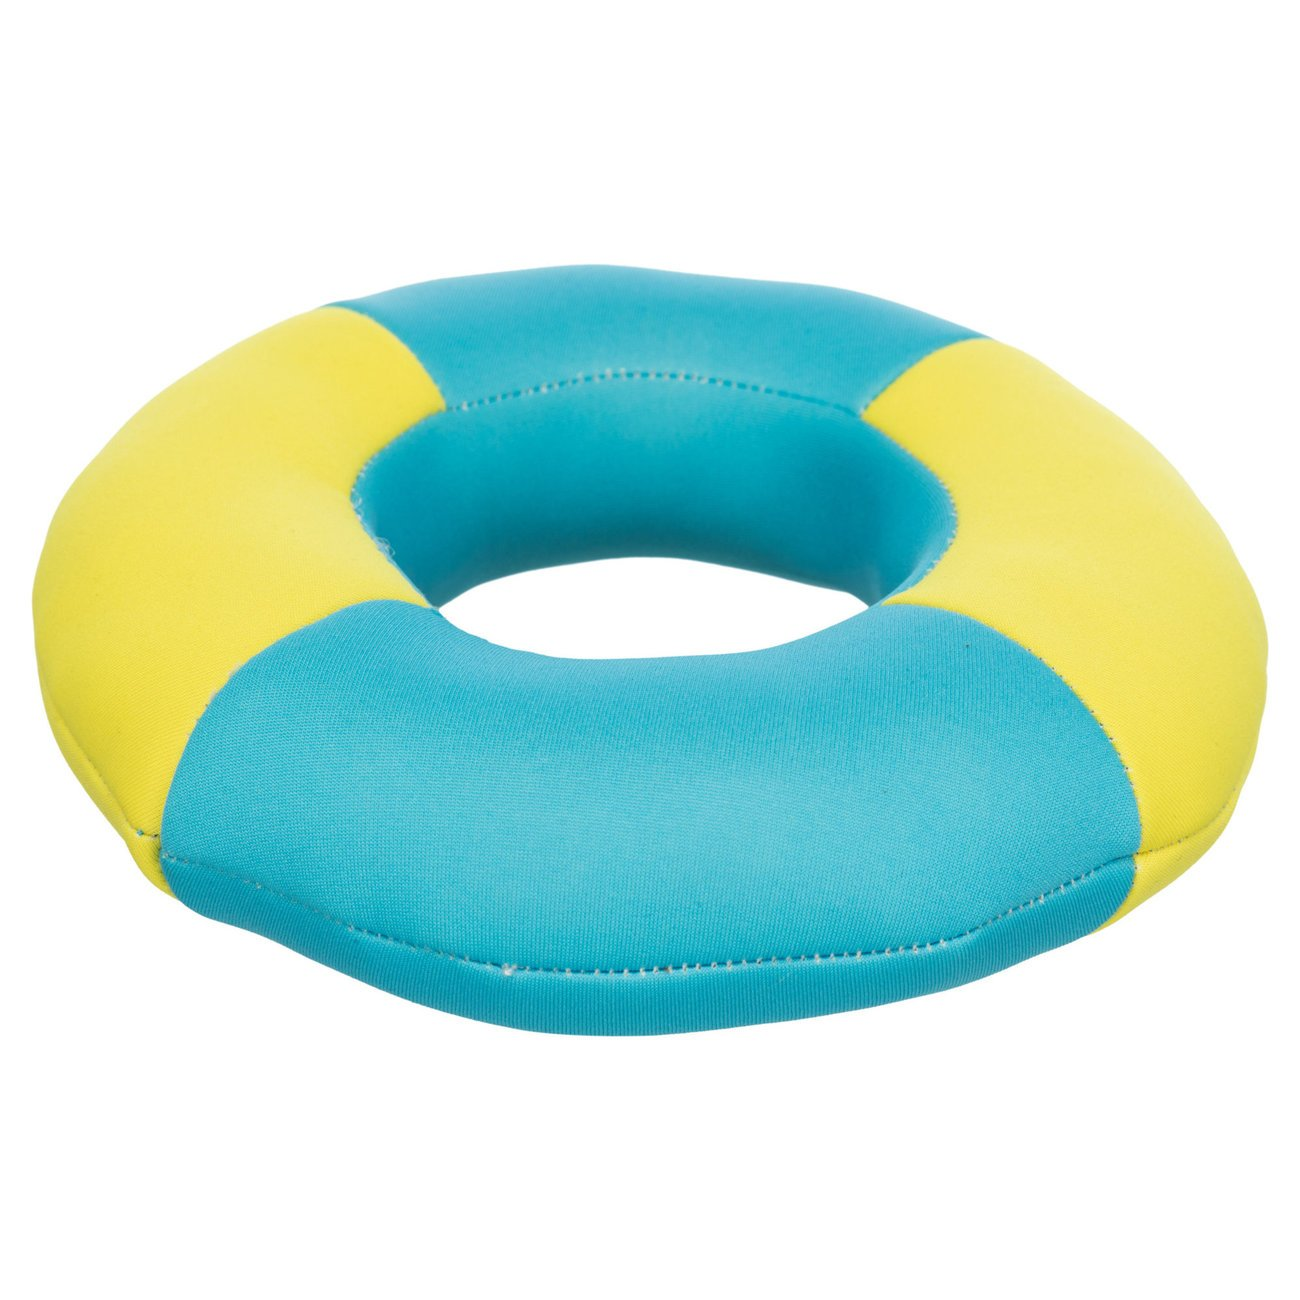 Trixie Hunde Aqua Toy Ring, schwimmt, 20 cm